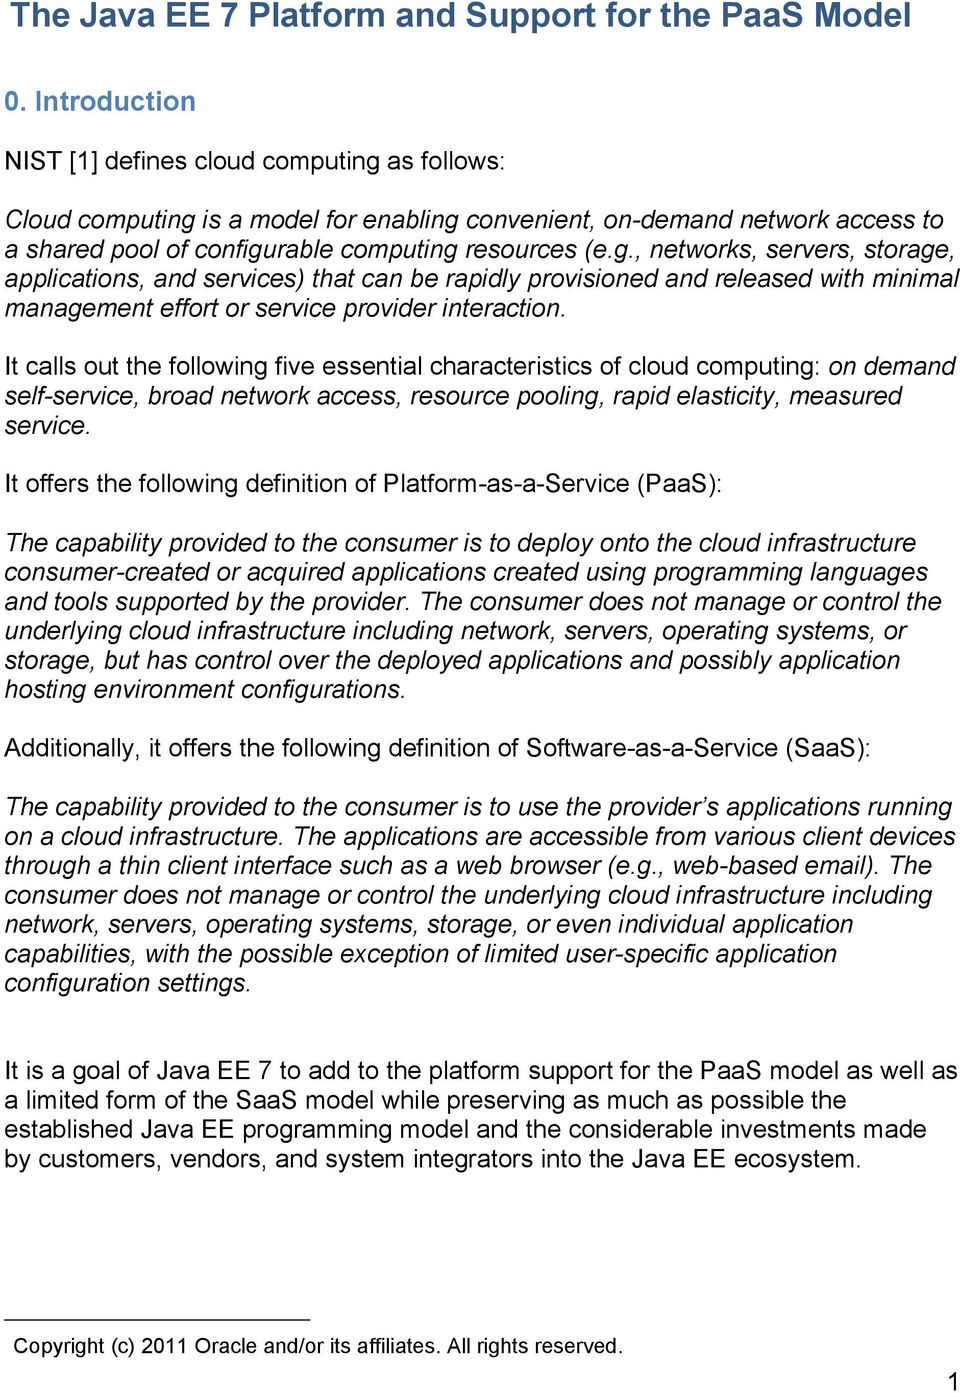 as follows: Cloud computing is a model for enabling convenient, on-demand network access to a shared pool of configurable computing resources (e.g., networks, servers, storage, applications, and services) that can be rapidly provisioned and released with minimal management effort or service provider interaction.